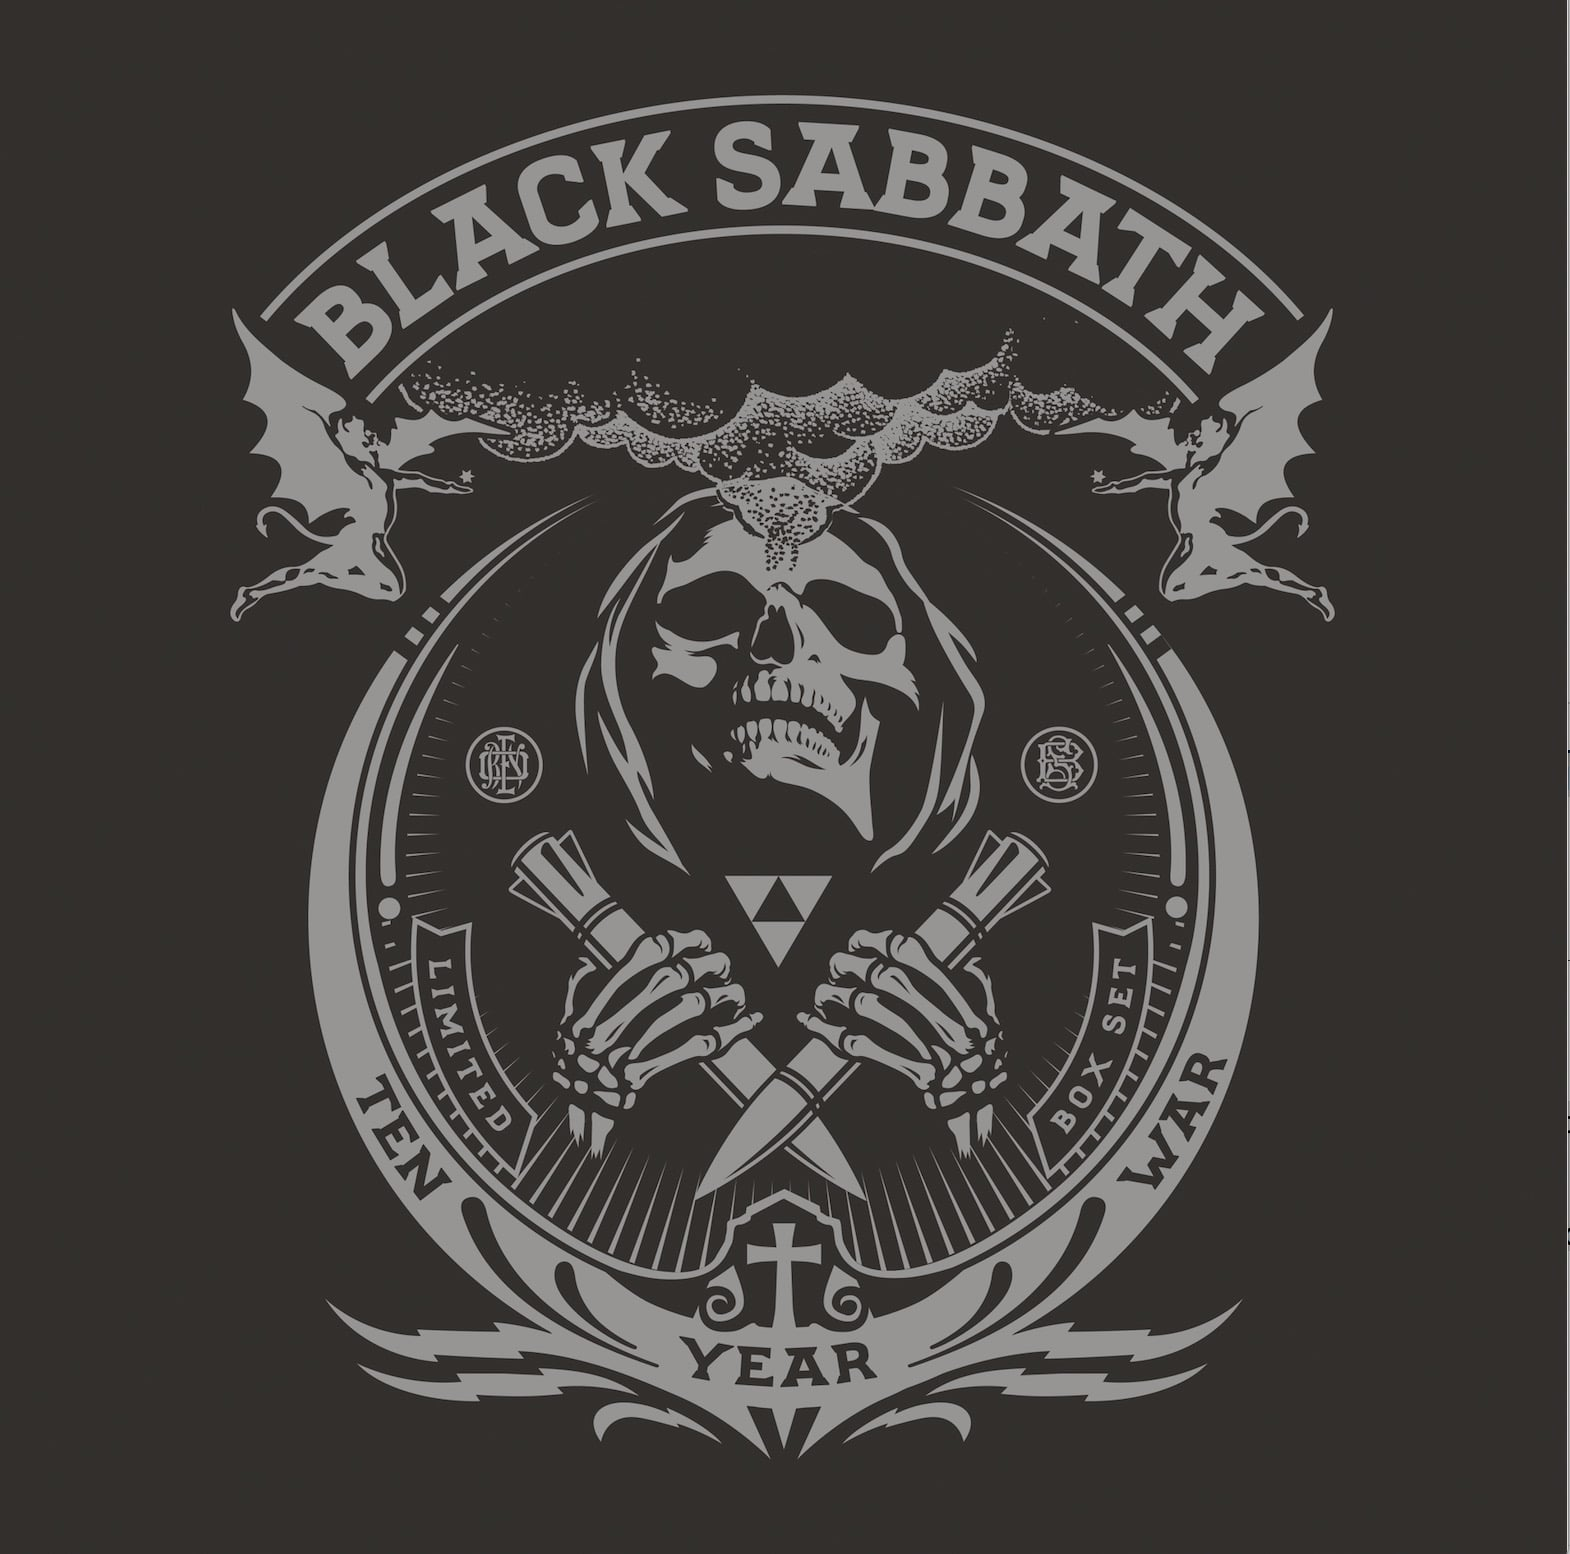 Black Sabbath S Ten Year War The Ultimate Guide The